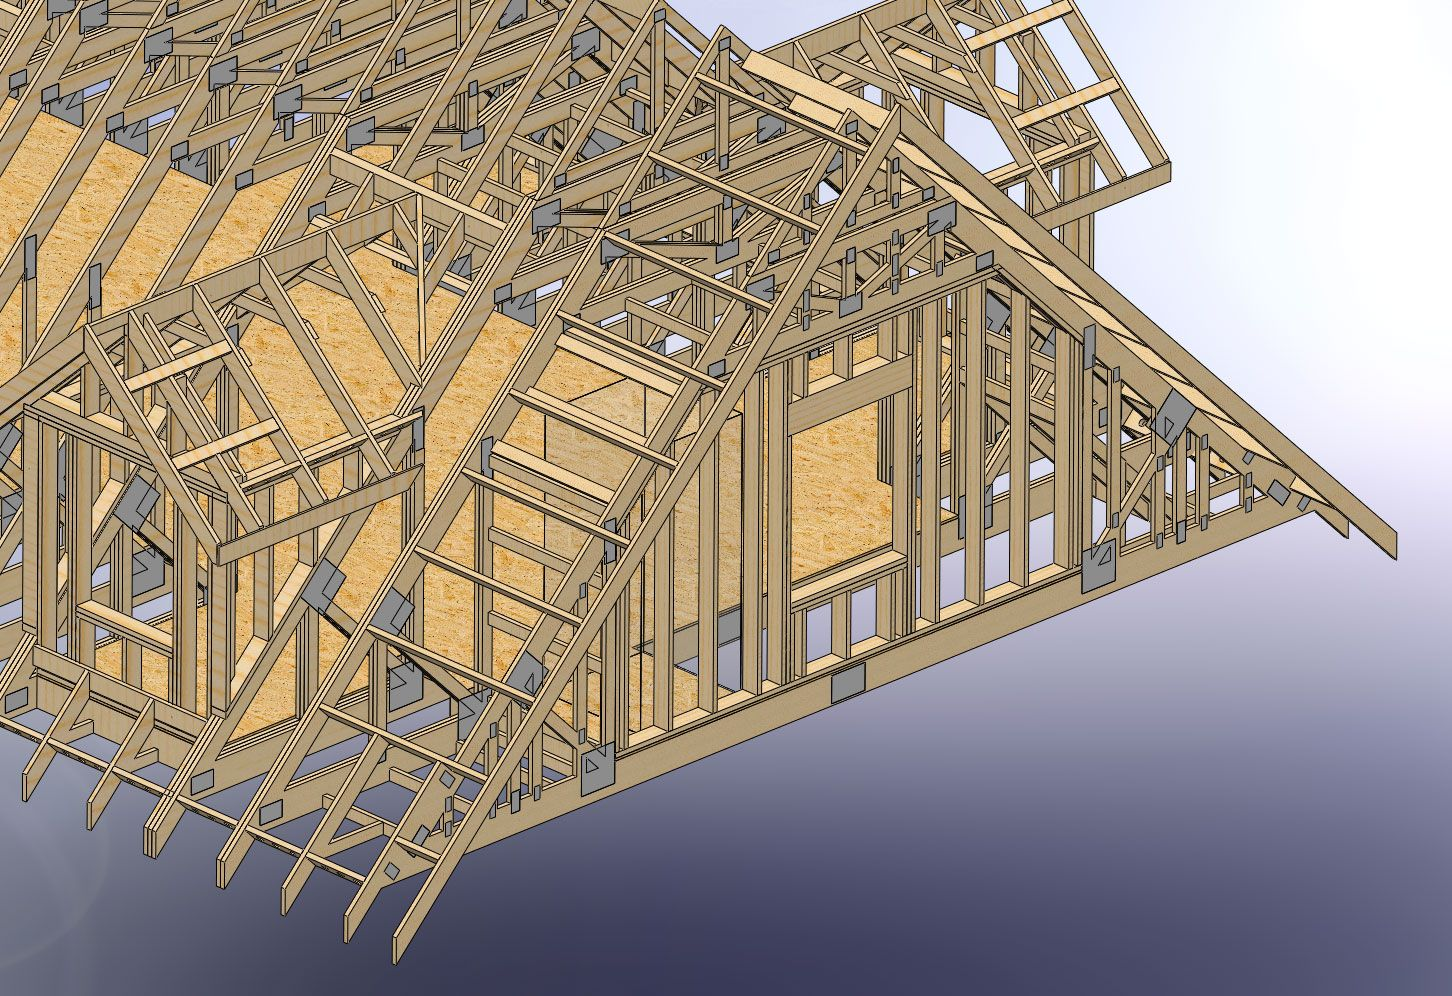 Truss design for upstairs rooms and dormers. | Creation | Pinterest ...